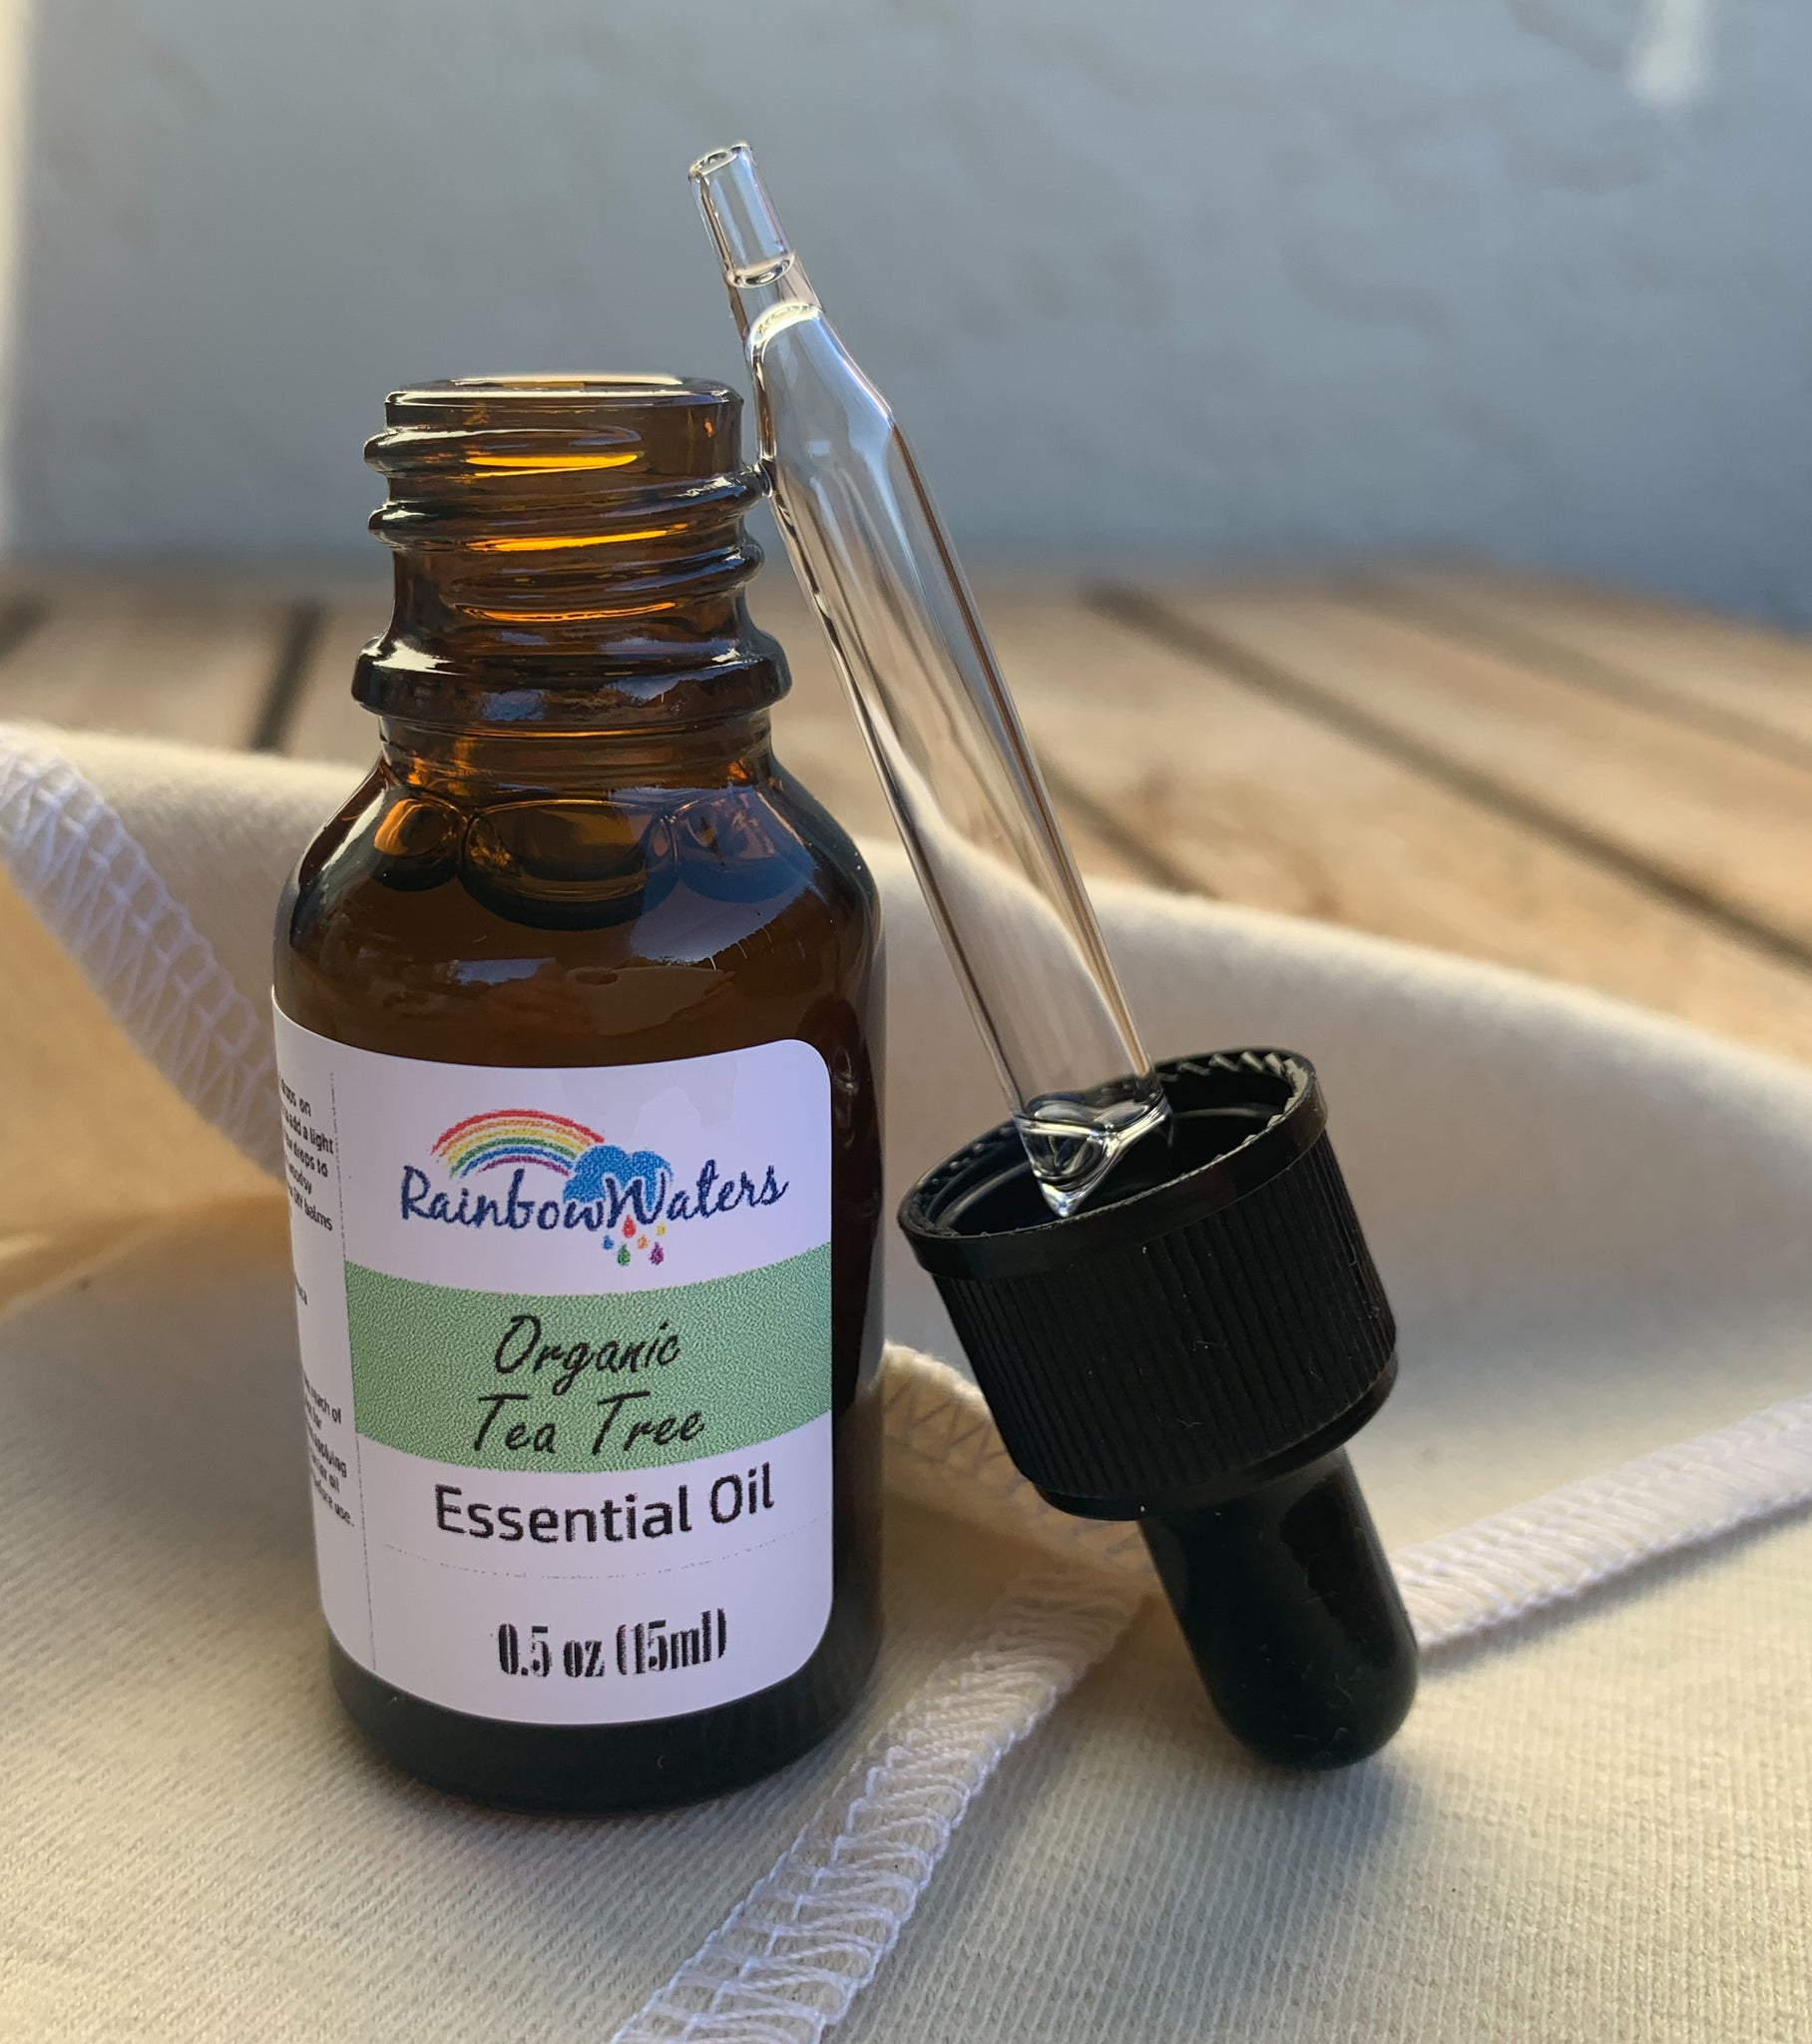 Pure Organic Tea Tree Essential Oil, 0.5oz (15ml)